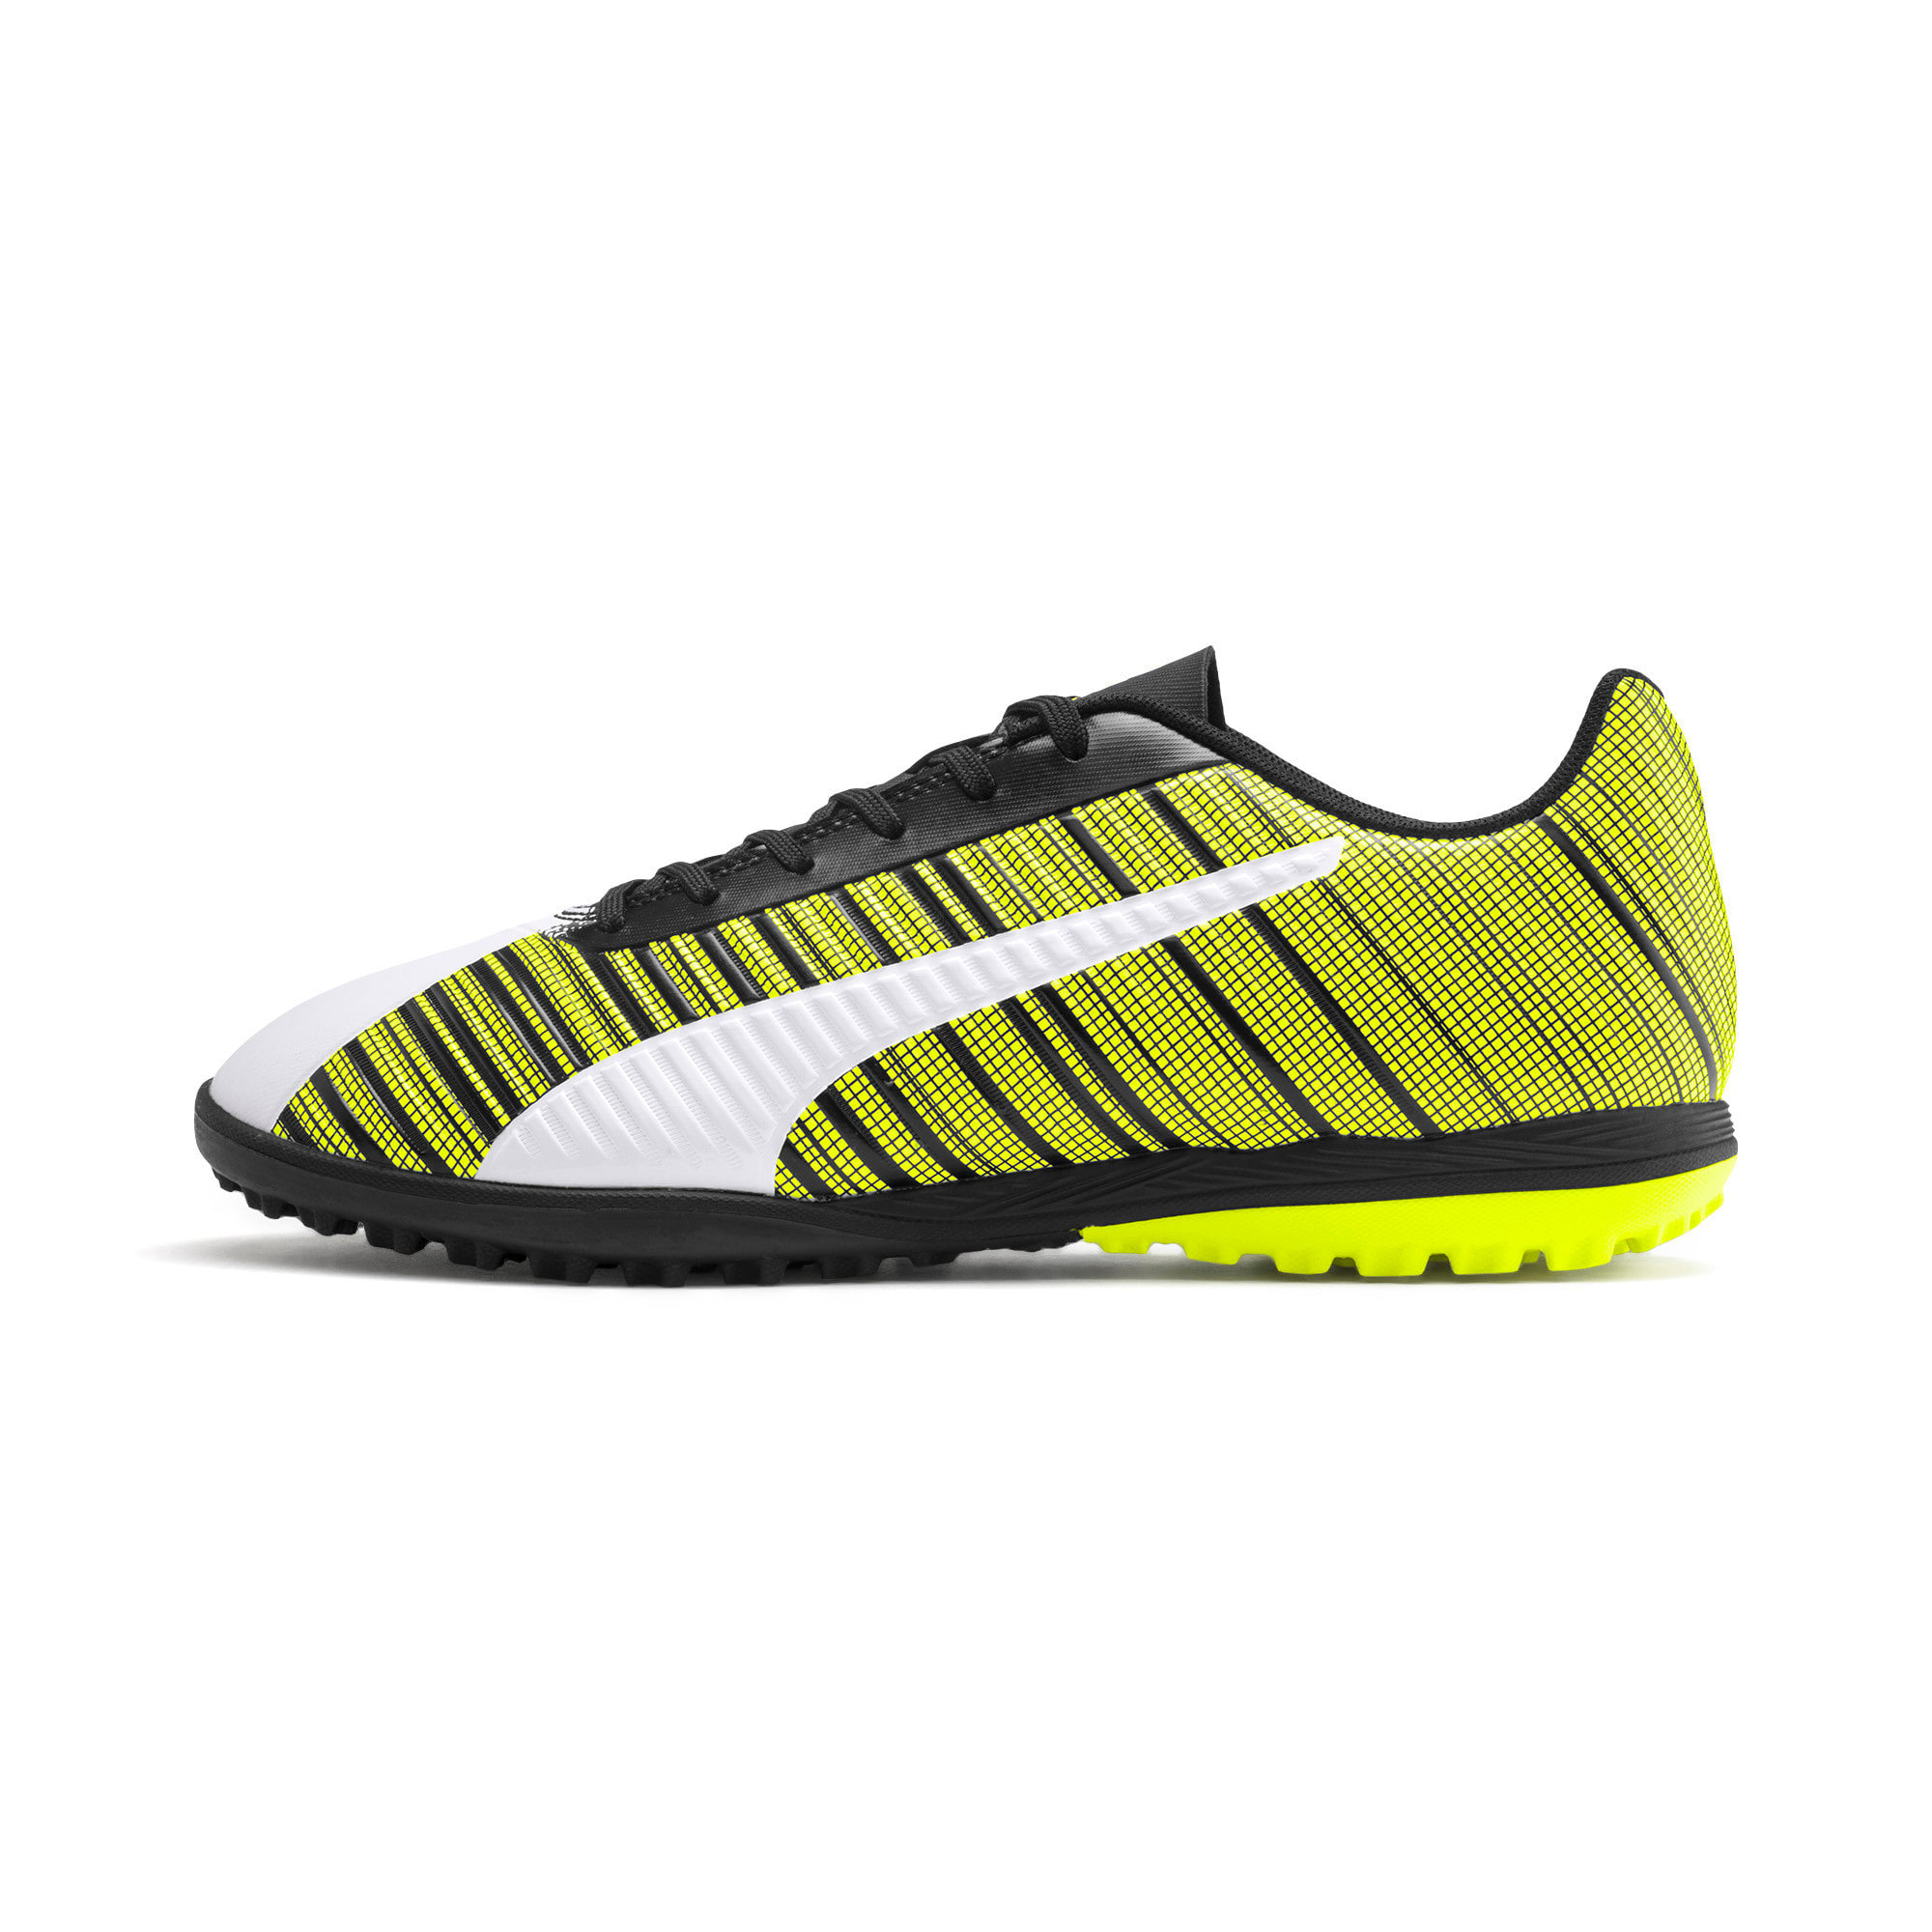 Thumbnail 1 of PUMA ONE 5.4 TT Men's Football Boots, White- Black-Yellow Alert, medium